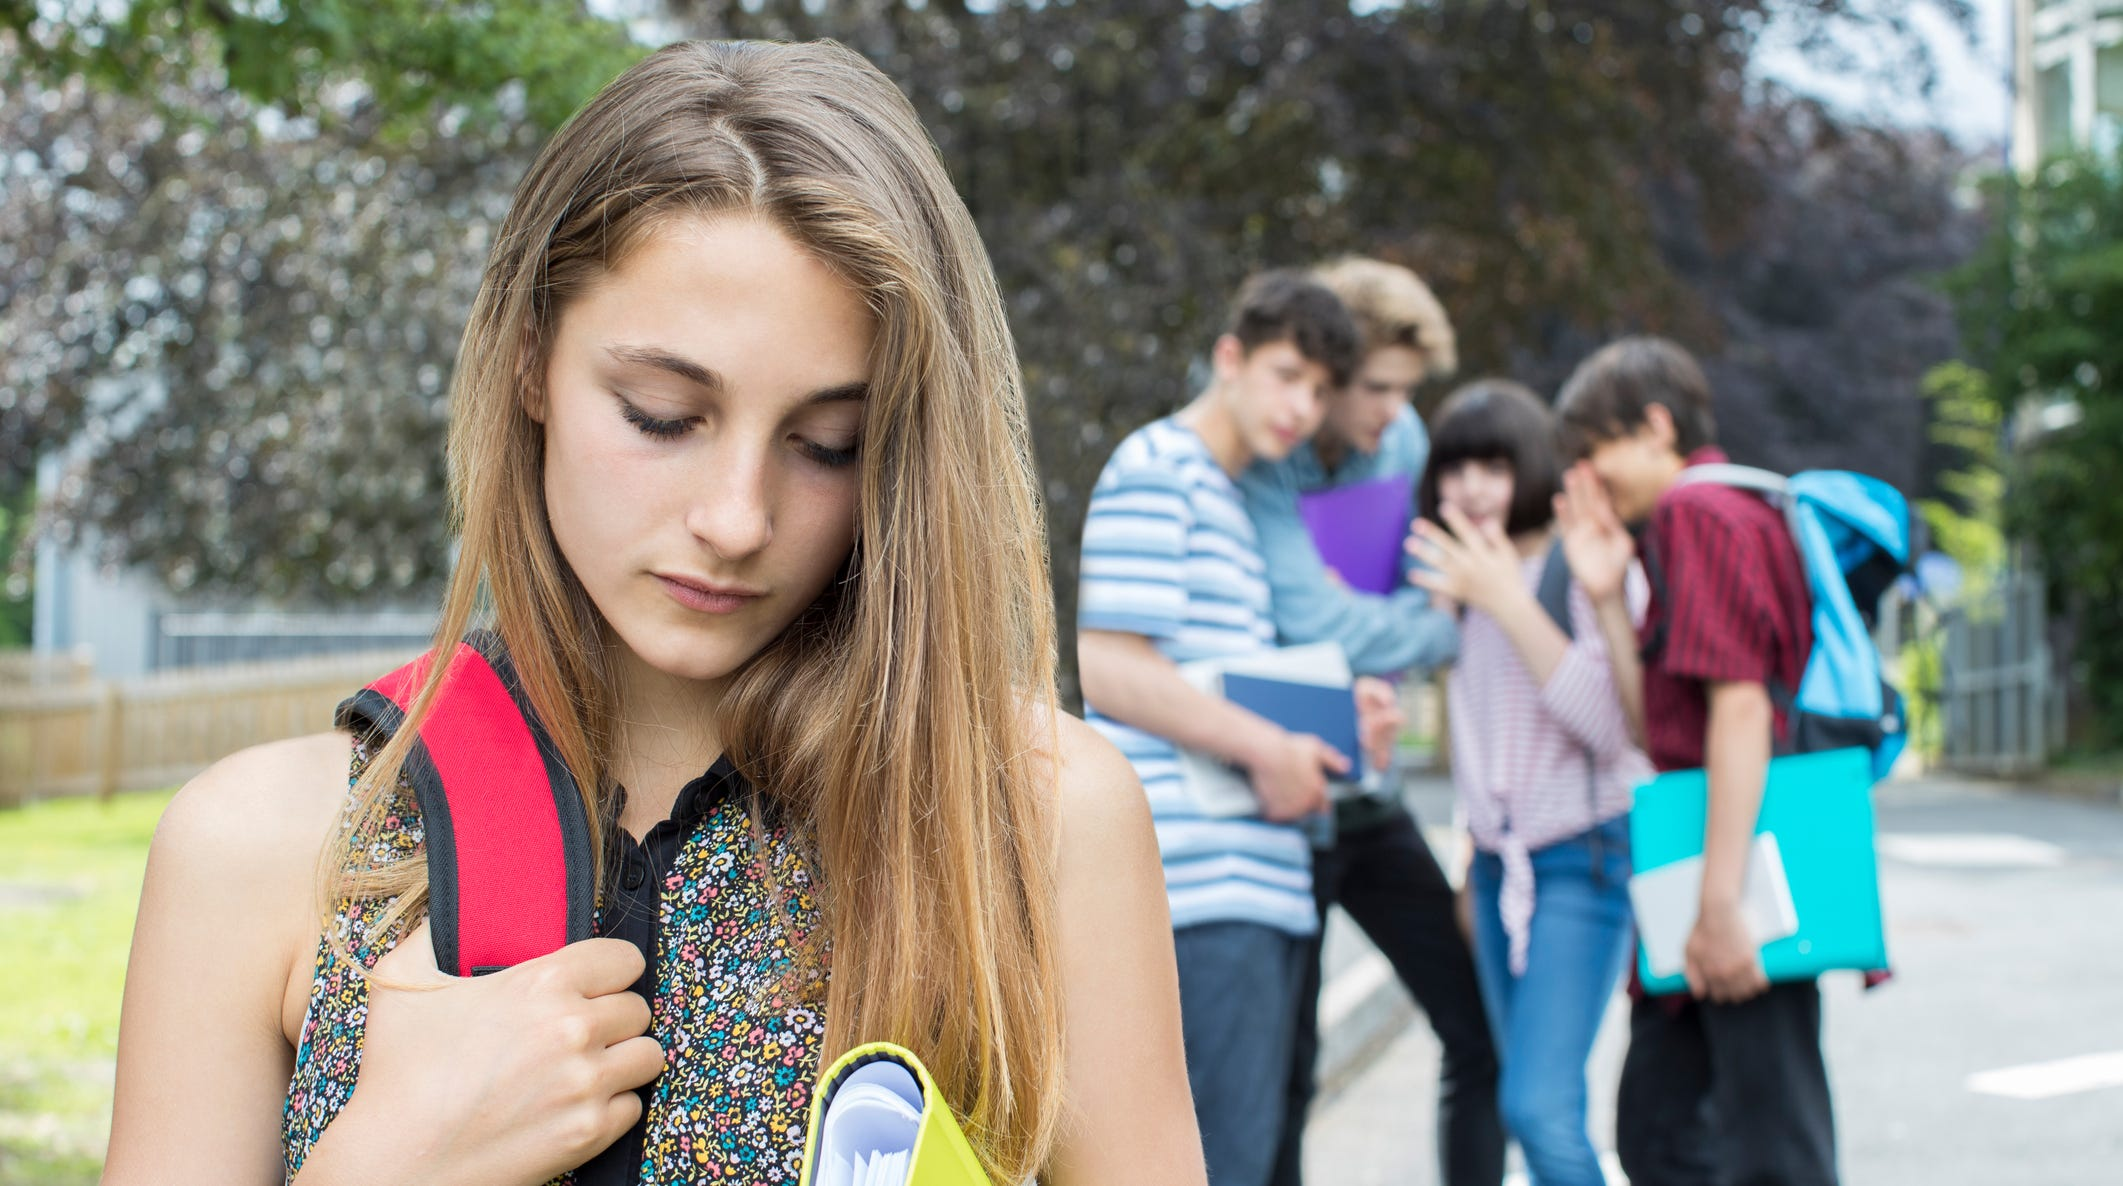 A third of students say they were bullied last school year, according to a report released today by nonprofit group YouthTruth.